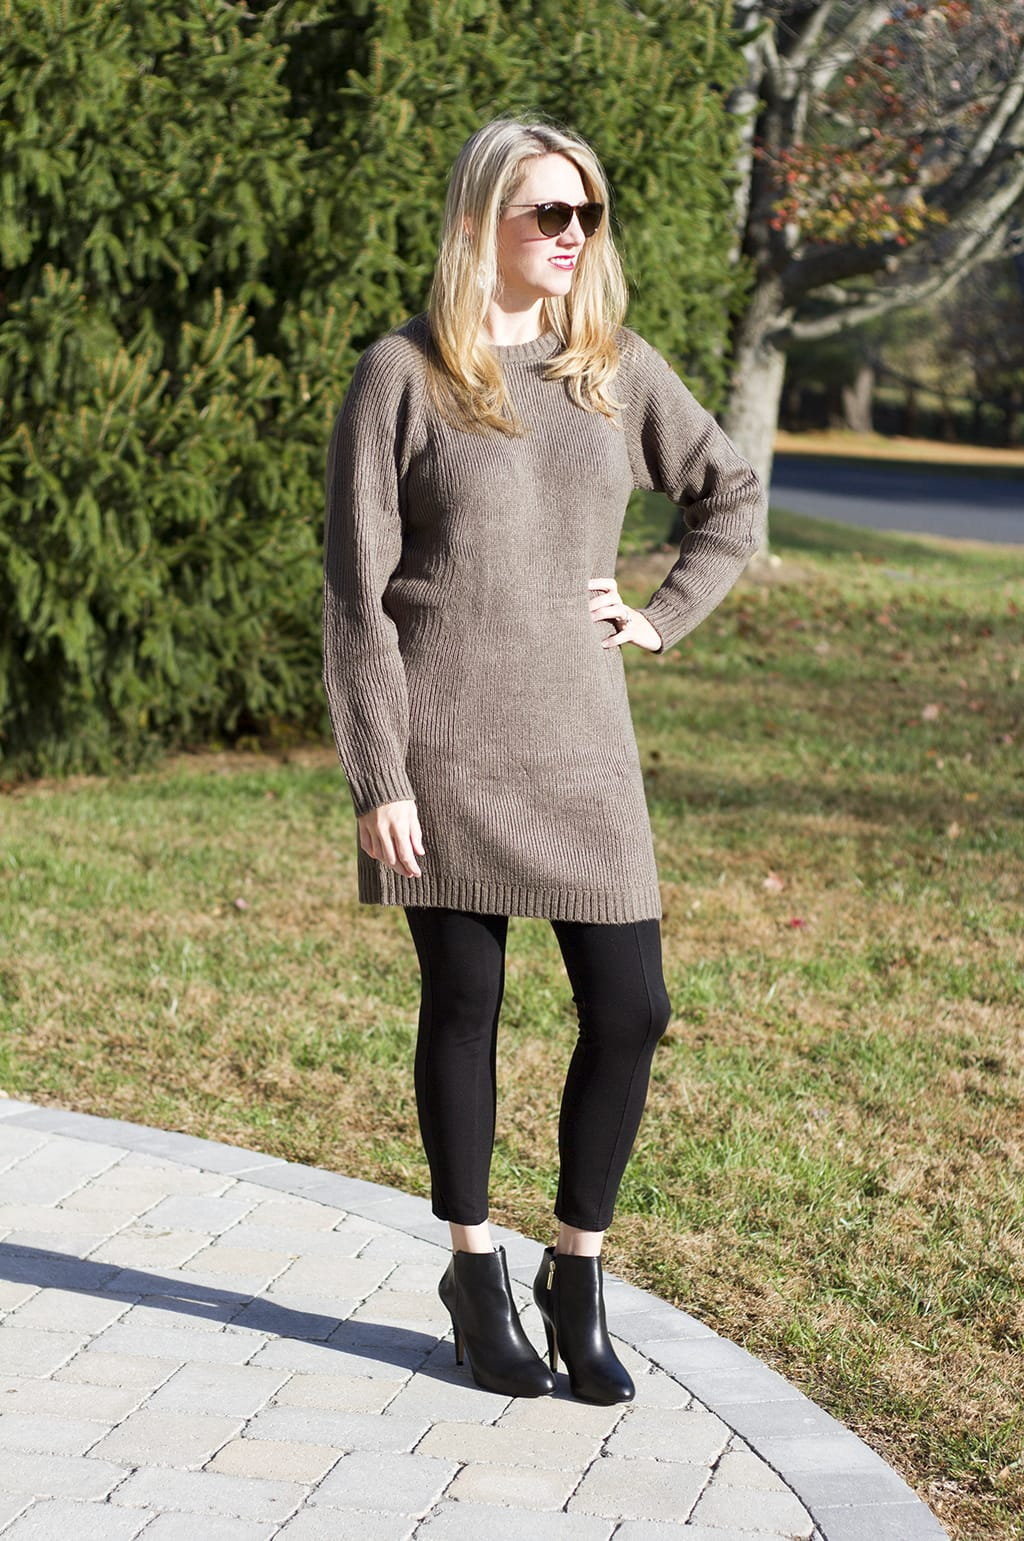 652d6446b5 Easy Chic Sweater Dress - Take Time For Style